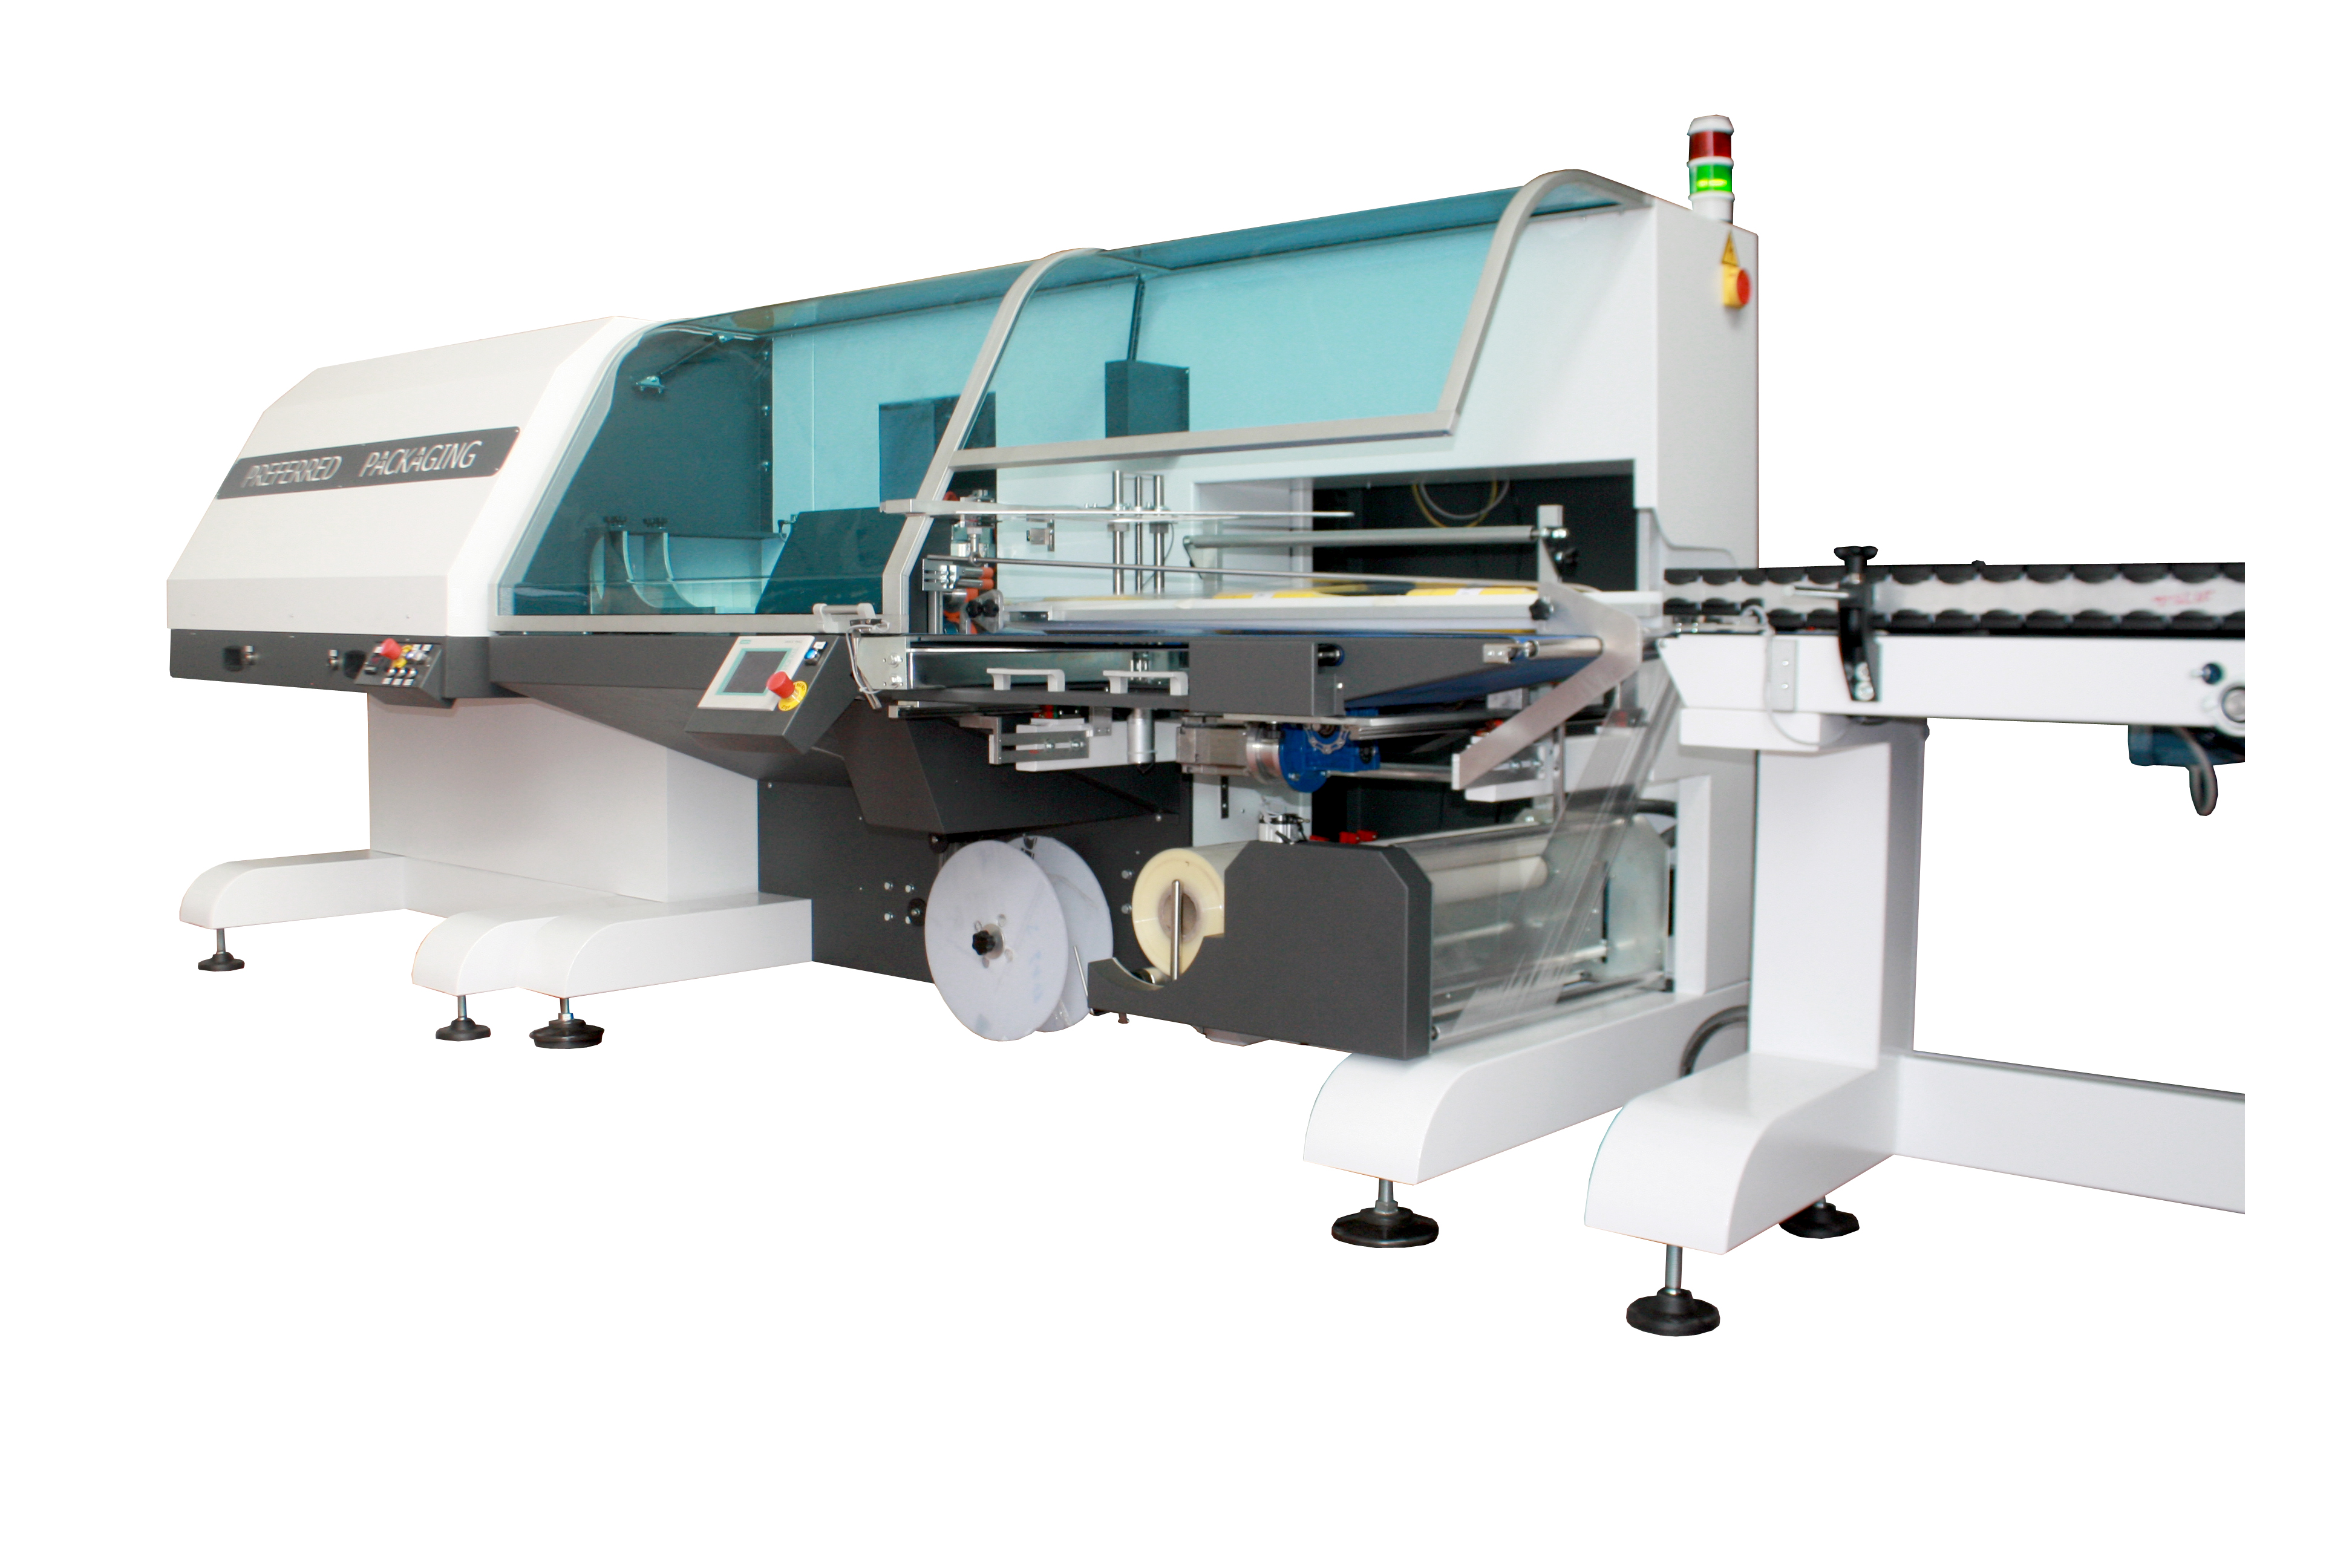 Apparel Machinery Mail: Direct Mail & Packaging Equipment And Supplies